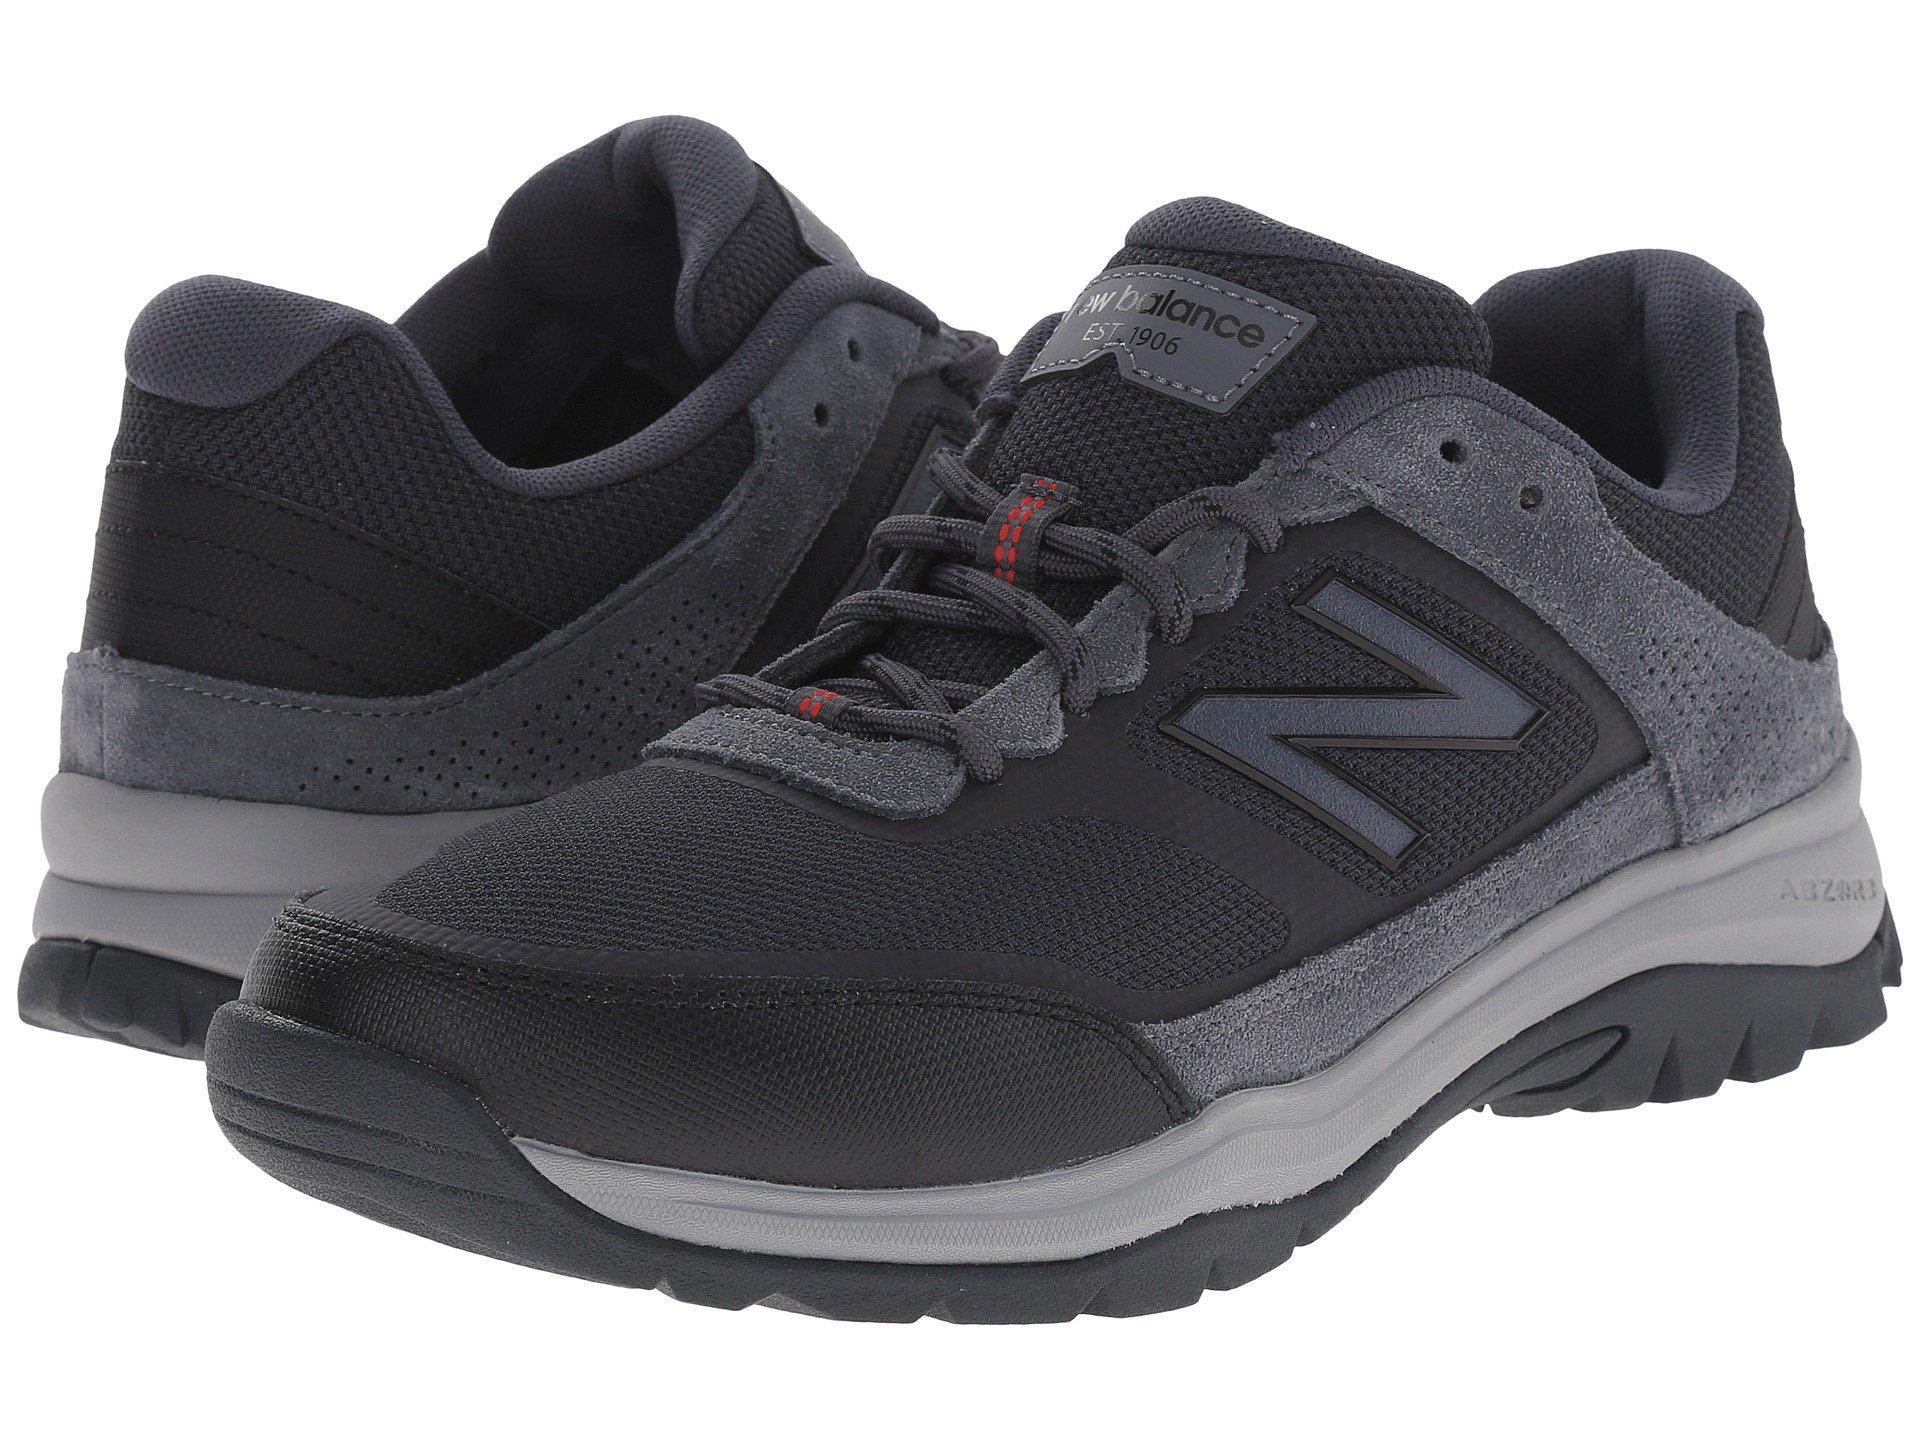 New Balance. Men's Gray Mw669v1